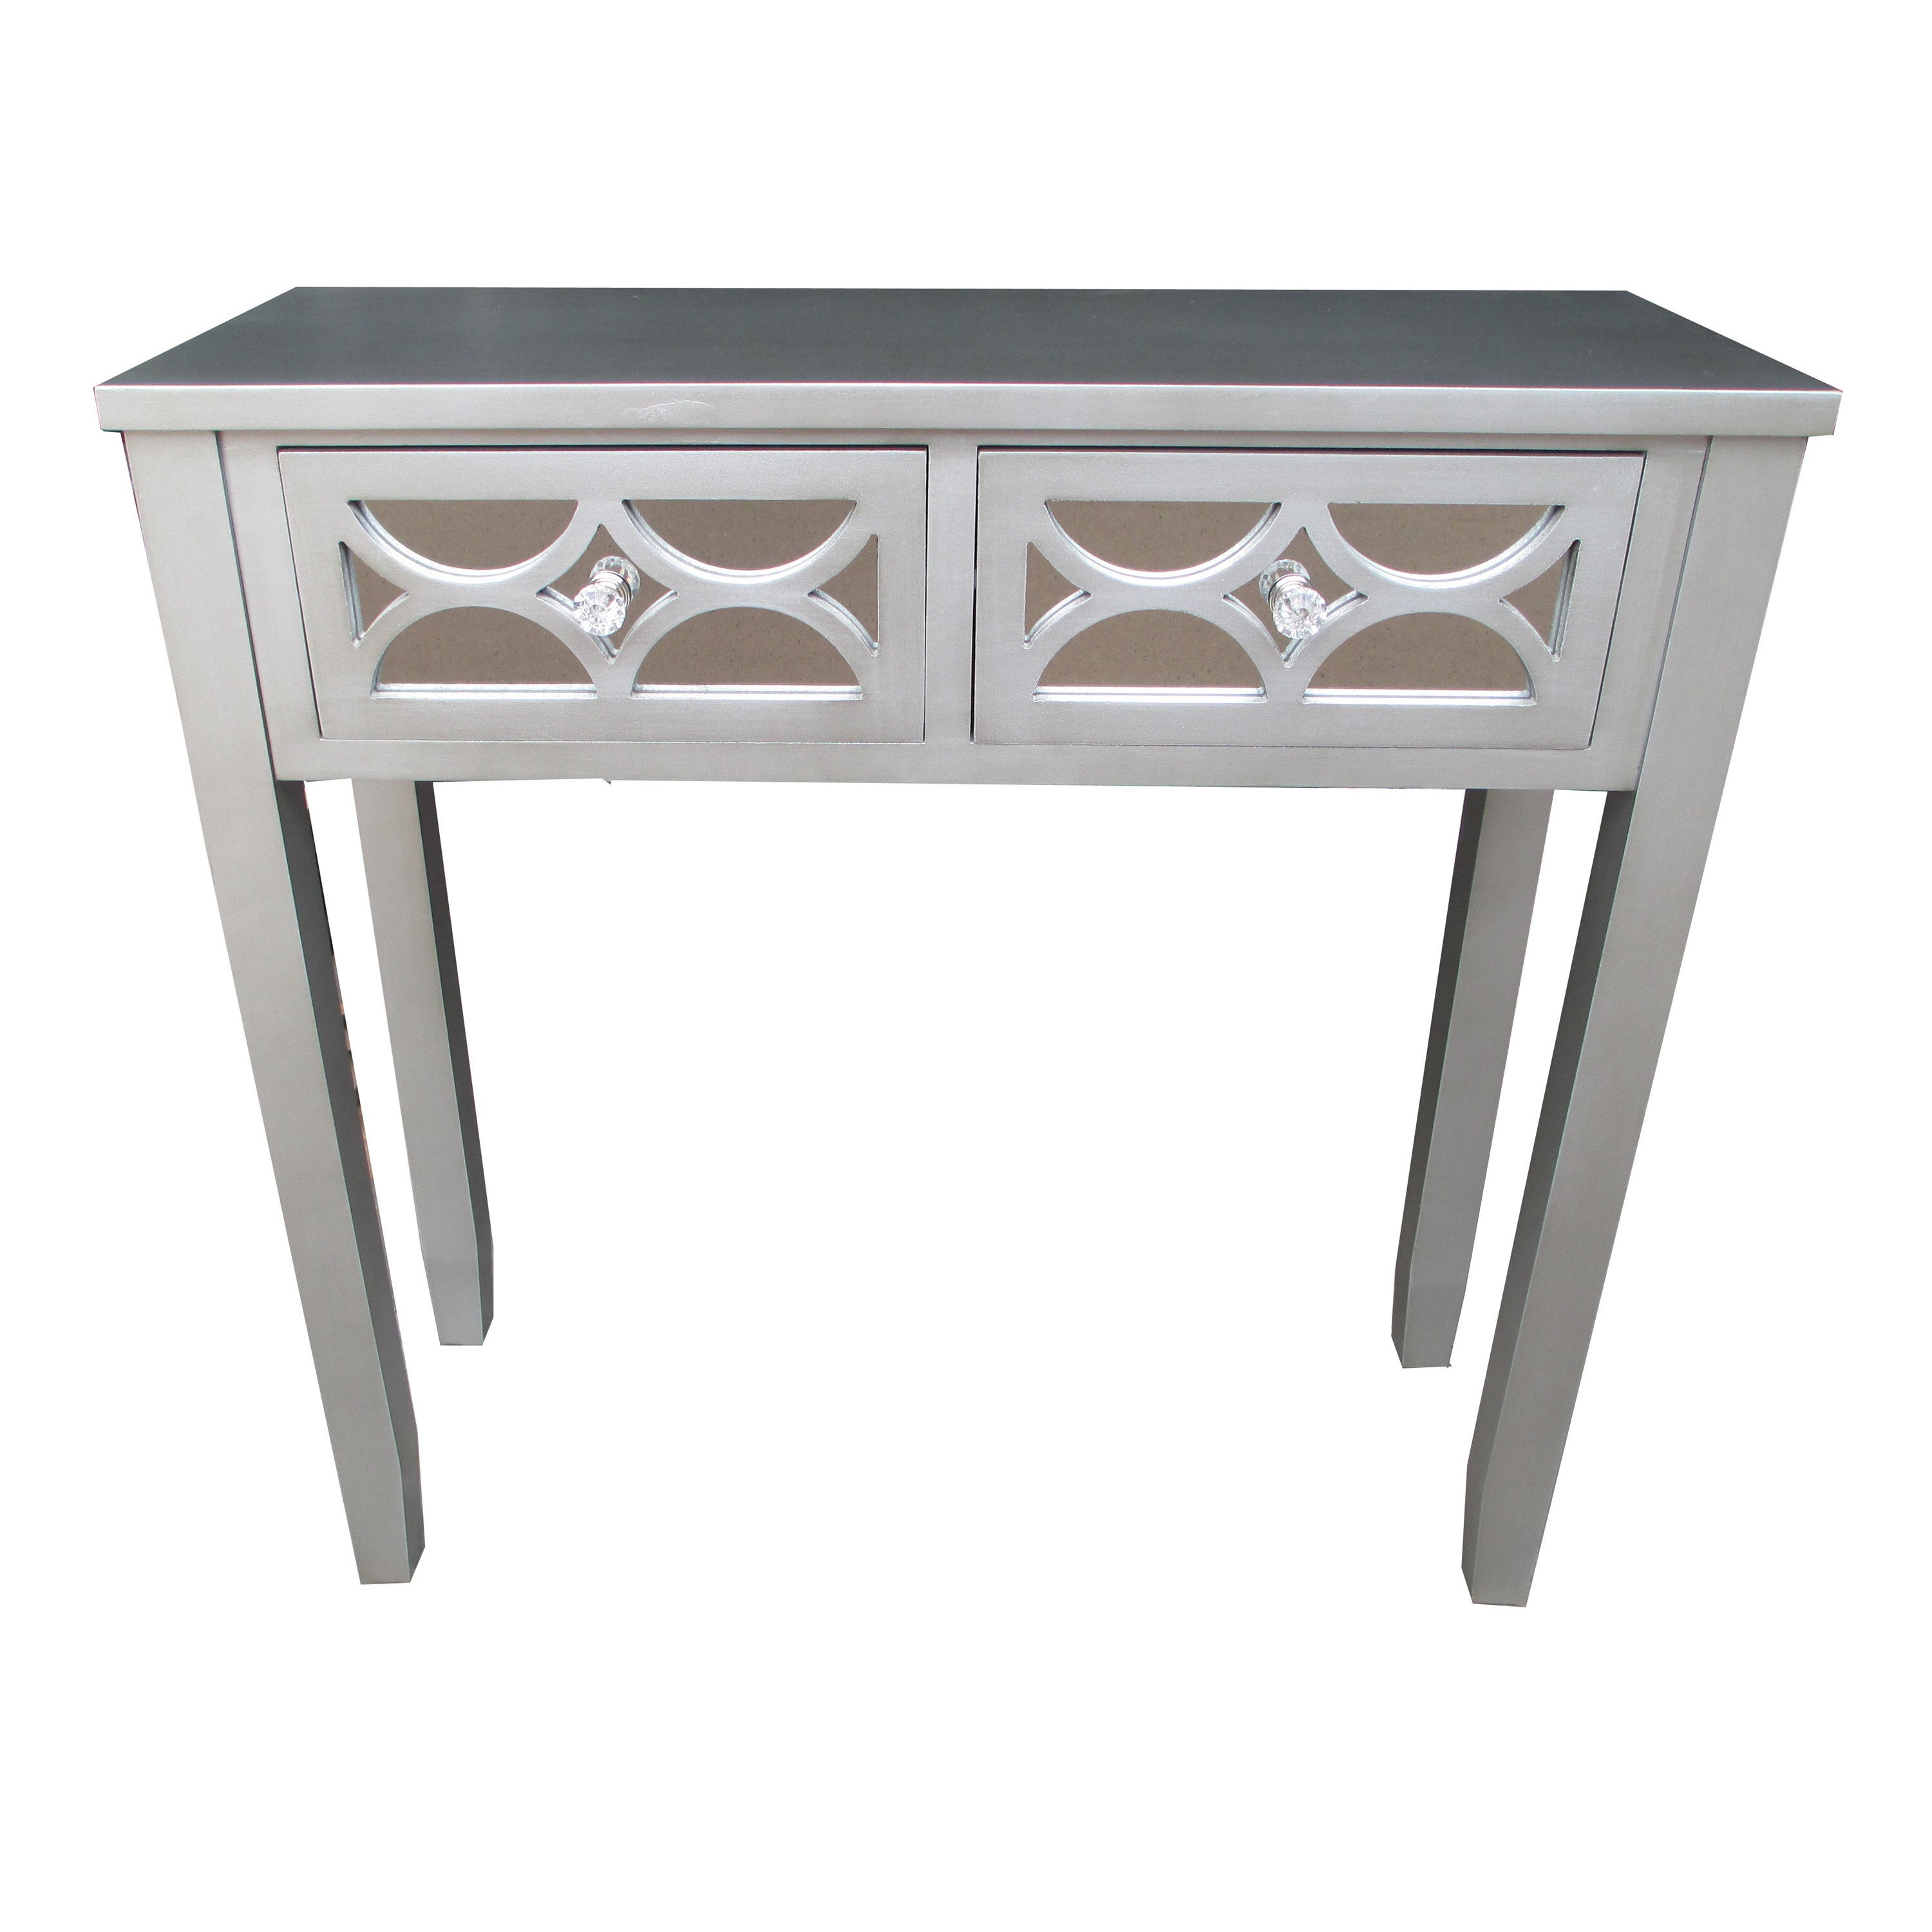 32 high console table compare prices at nextag for Sofa table 50 inches